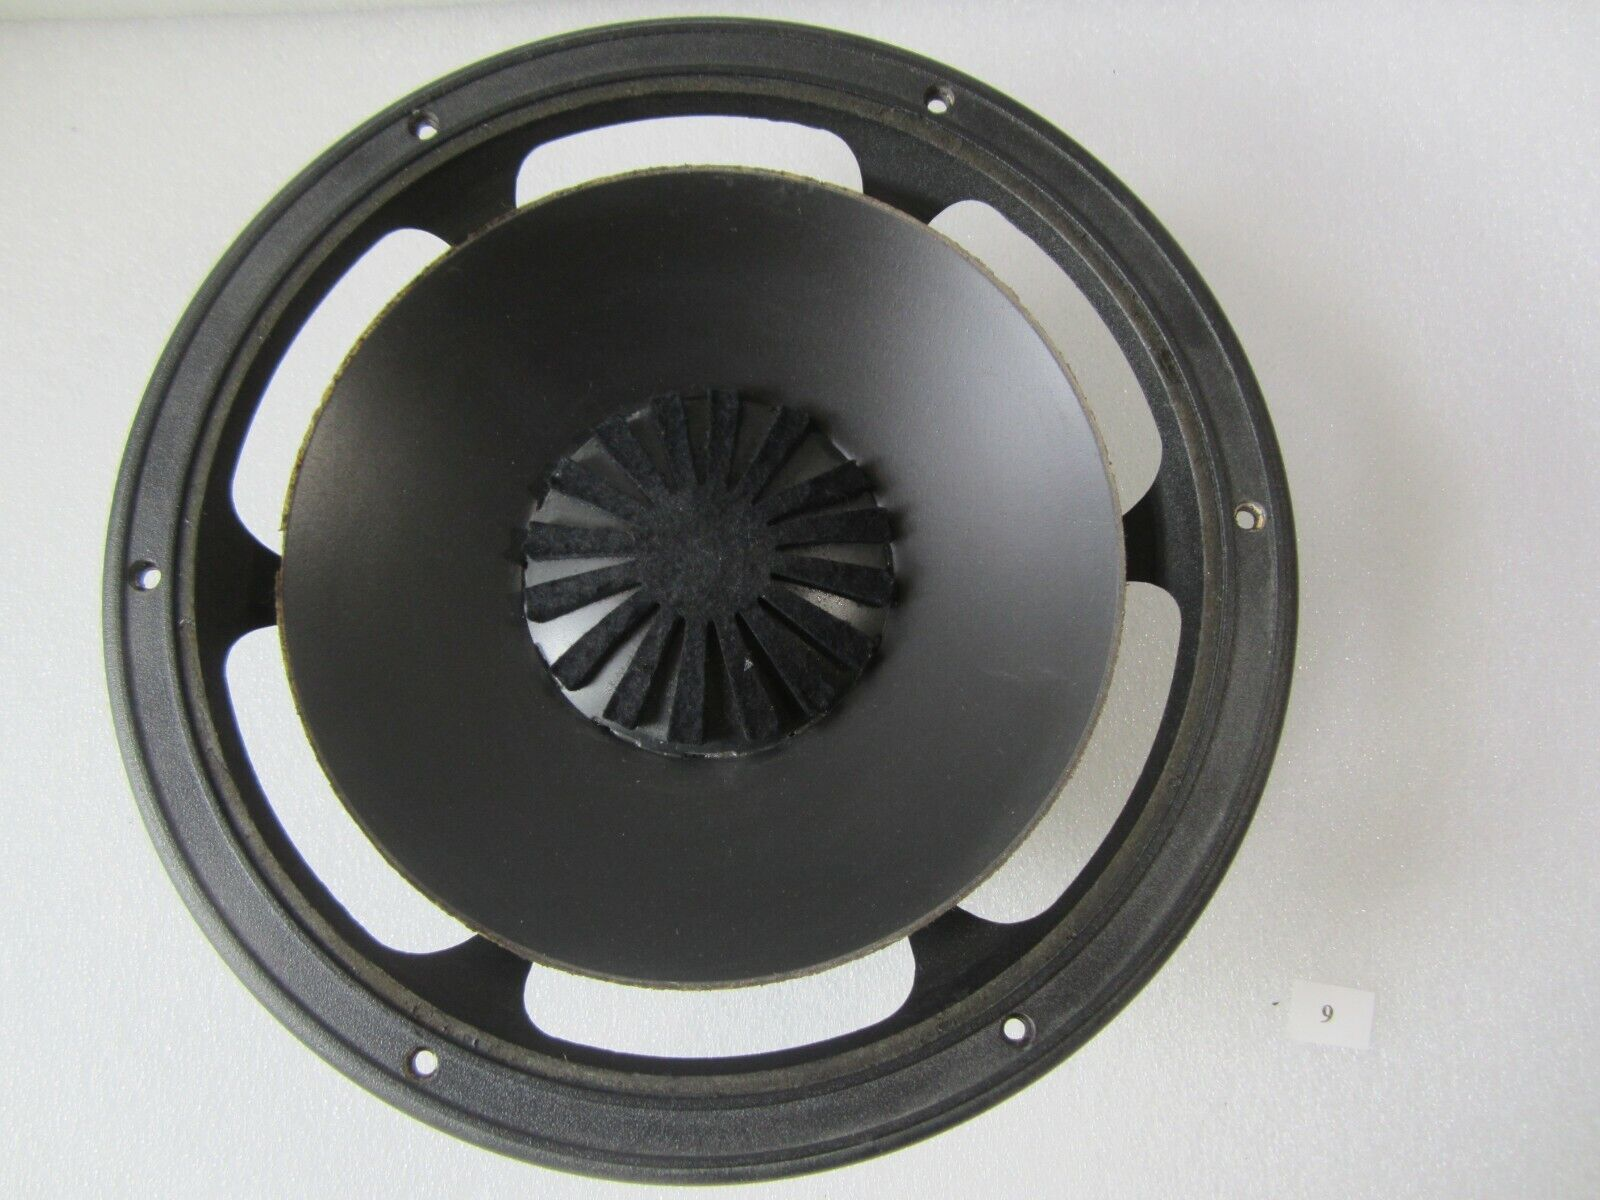 Dynaudio 30w 100 Woofer Subwoofer Used Tested Good 9  - $149.00